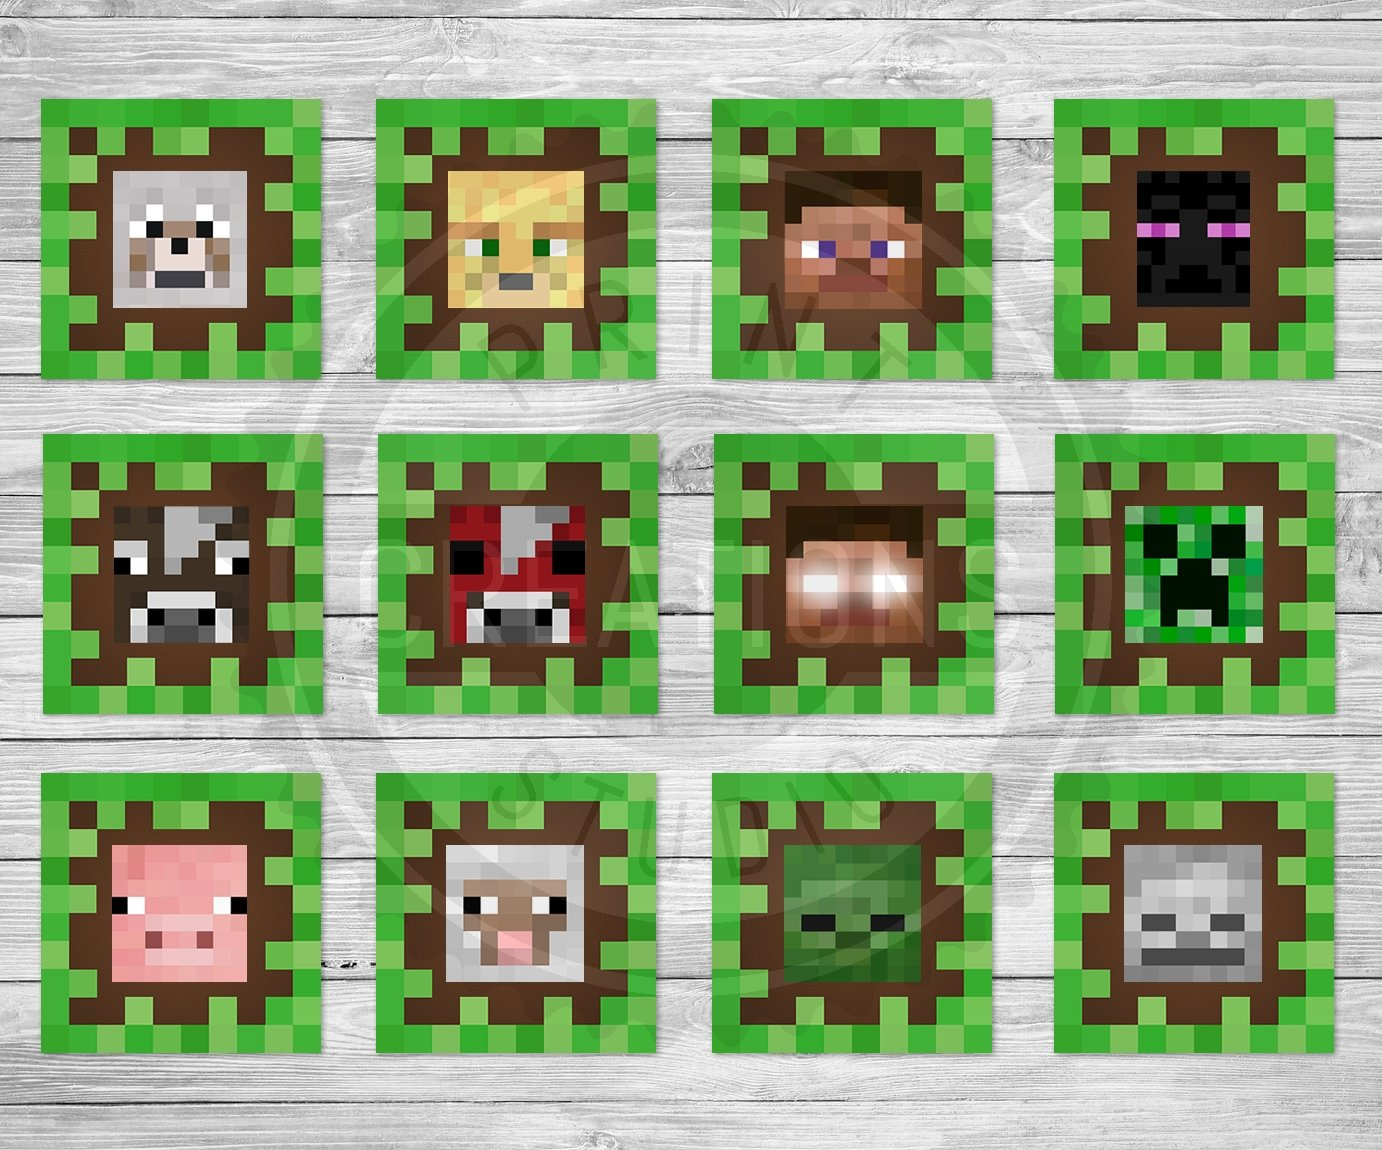 It is an image of Inventive Minecraft Free Printable